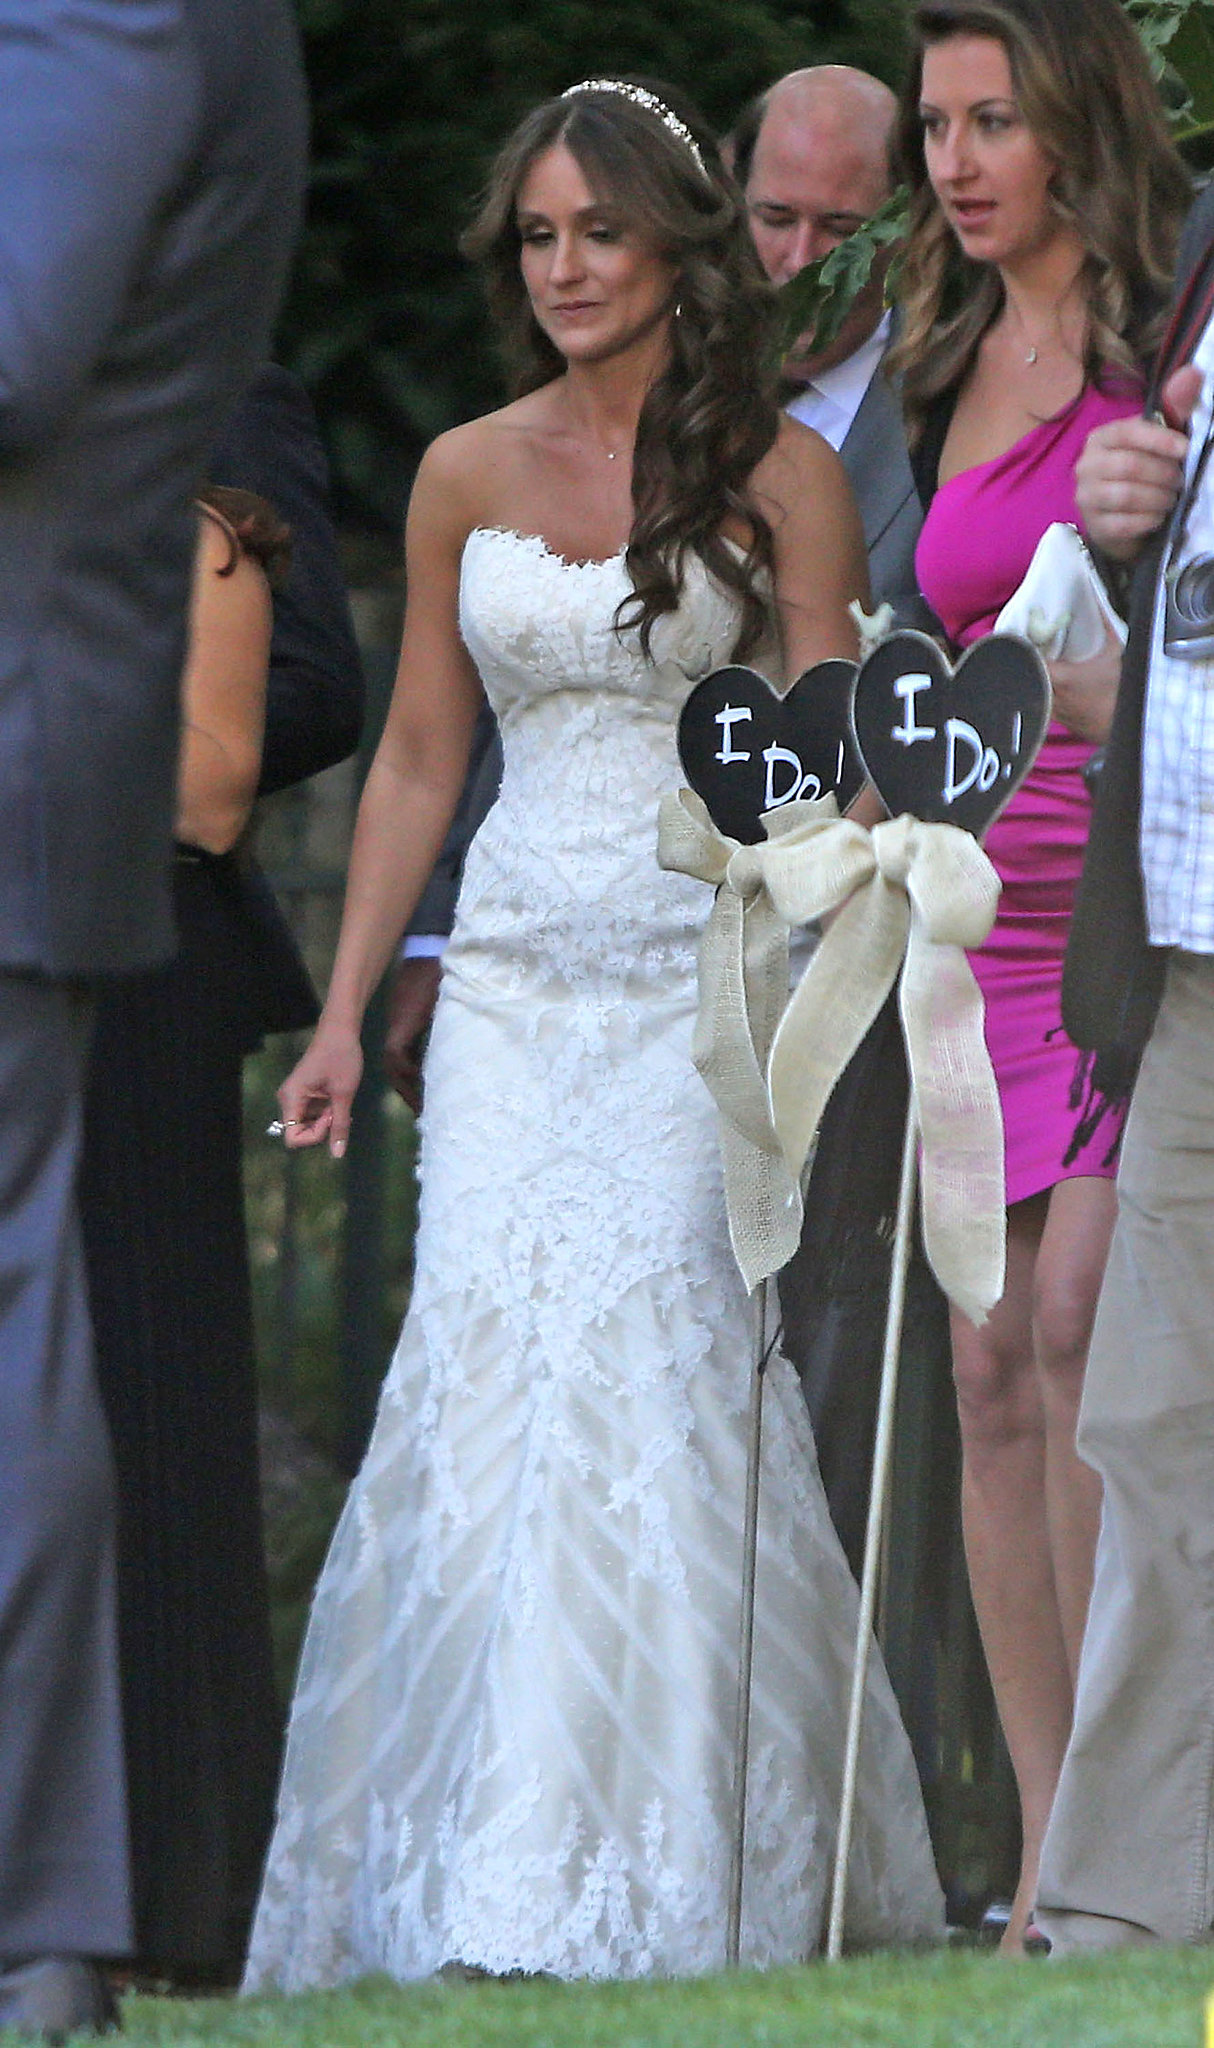 Brian's bride, Celeste Ackelson, wore a strapless gown.